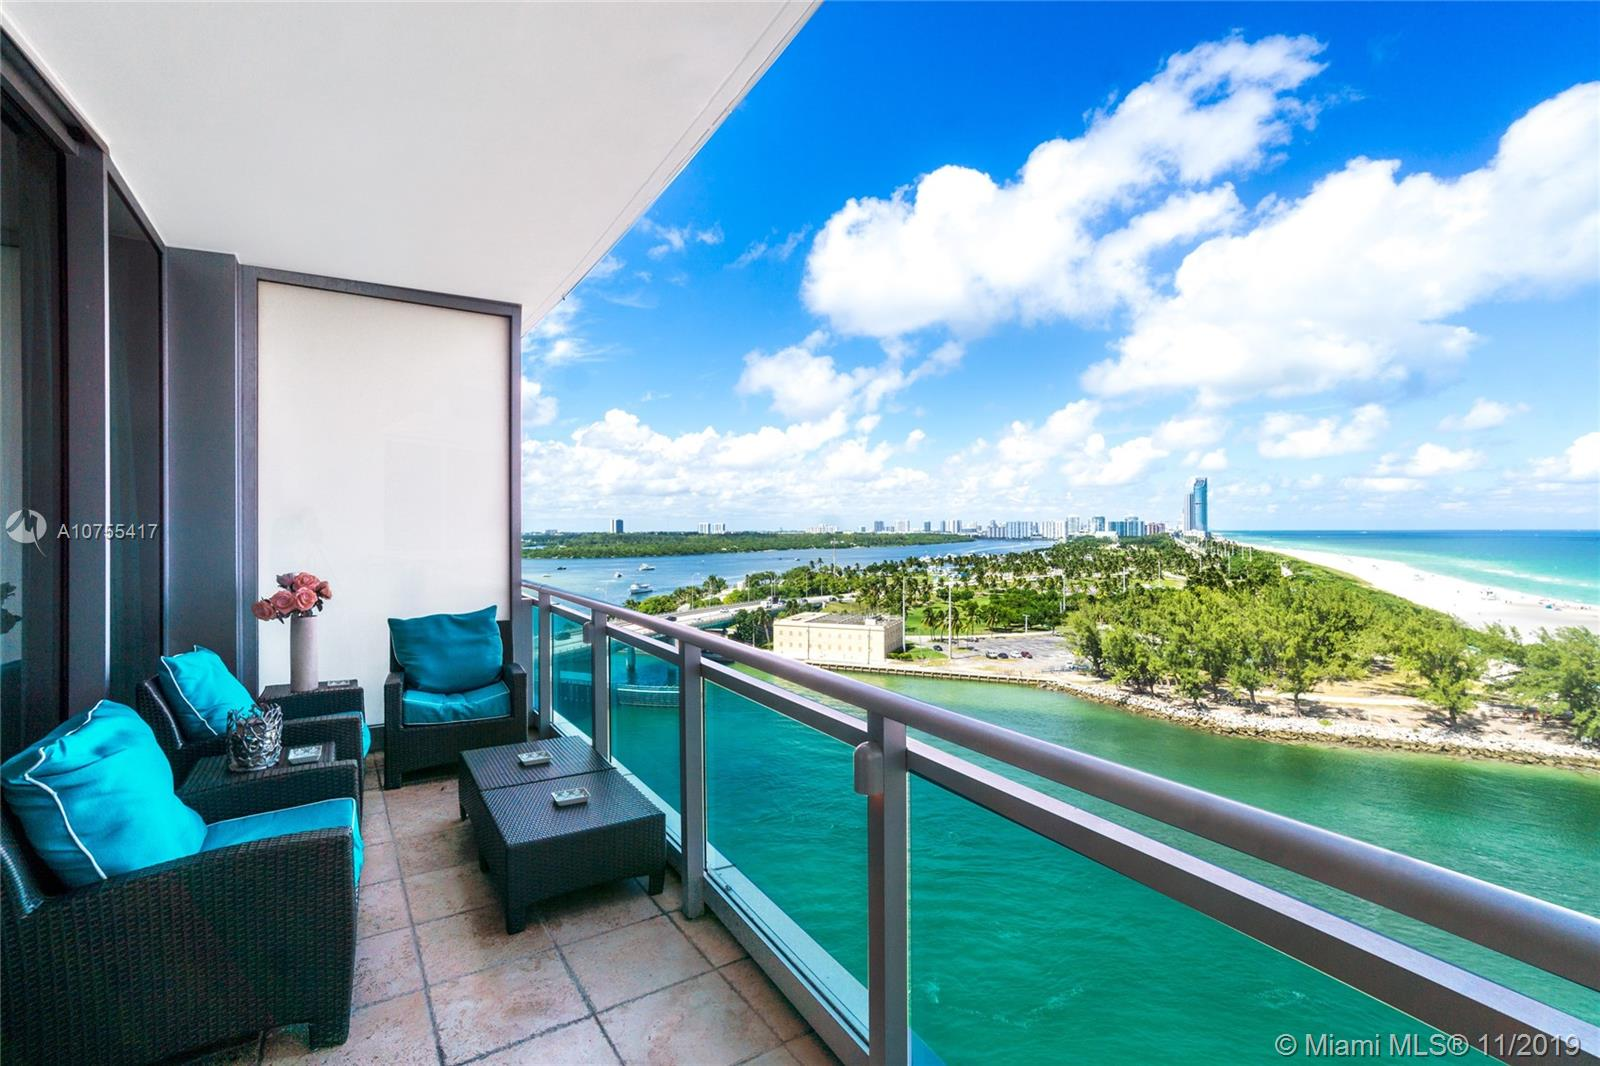 10295 Collins Ave, Unit #904 Luxury Real Estate